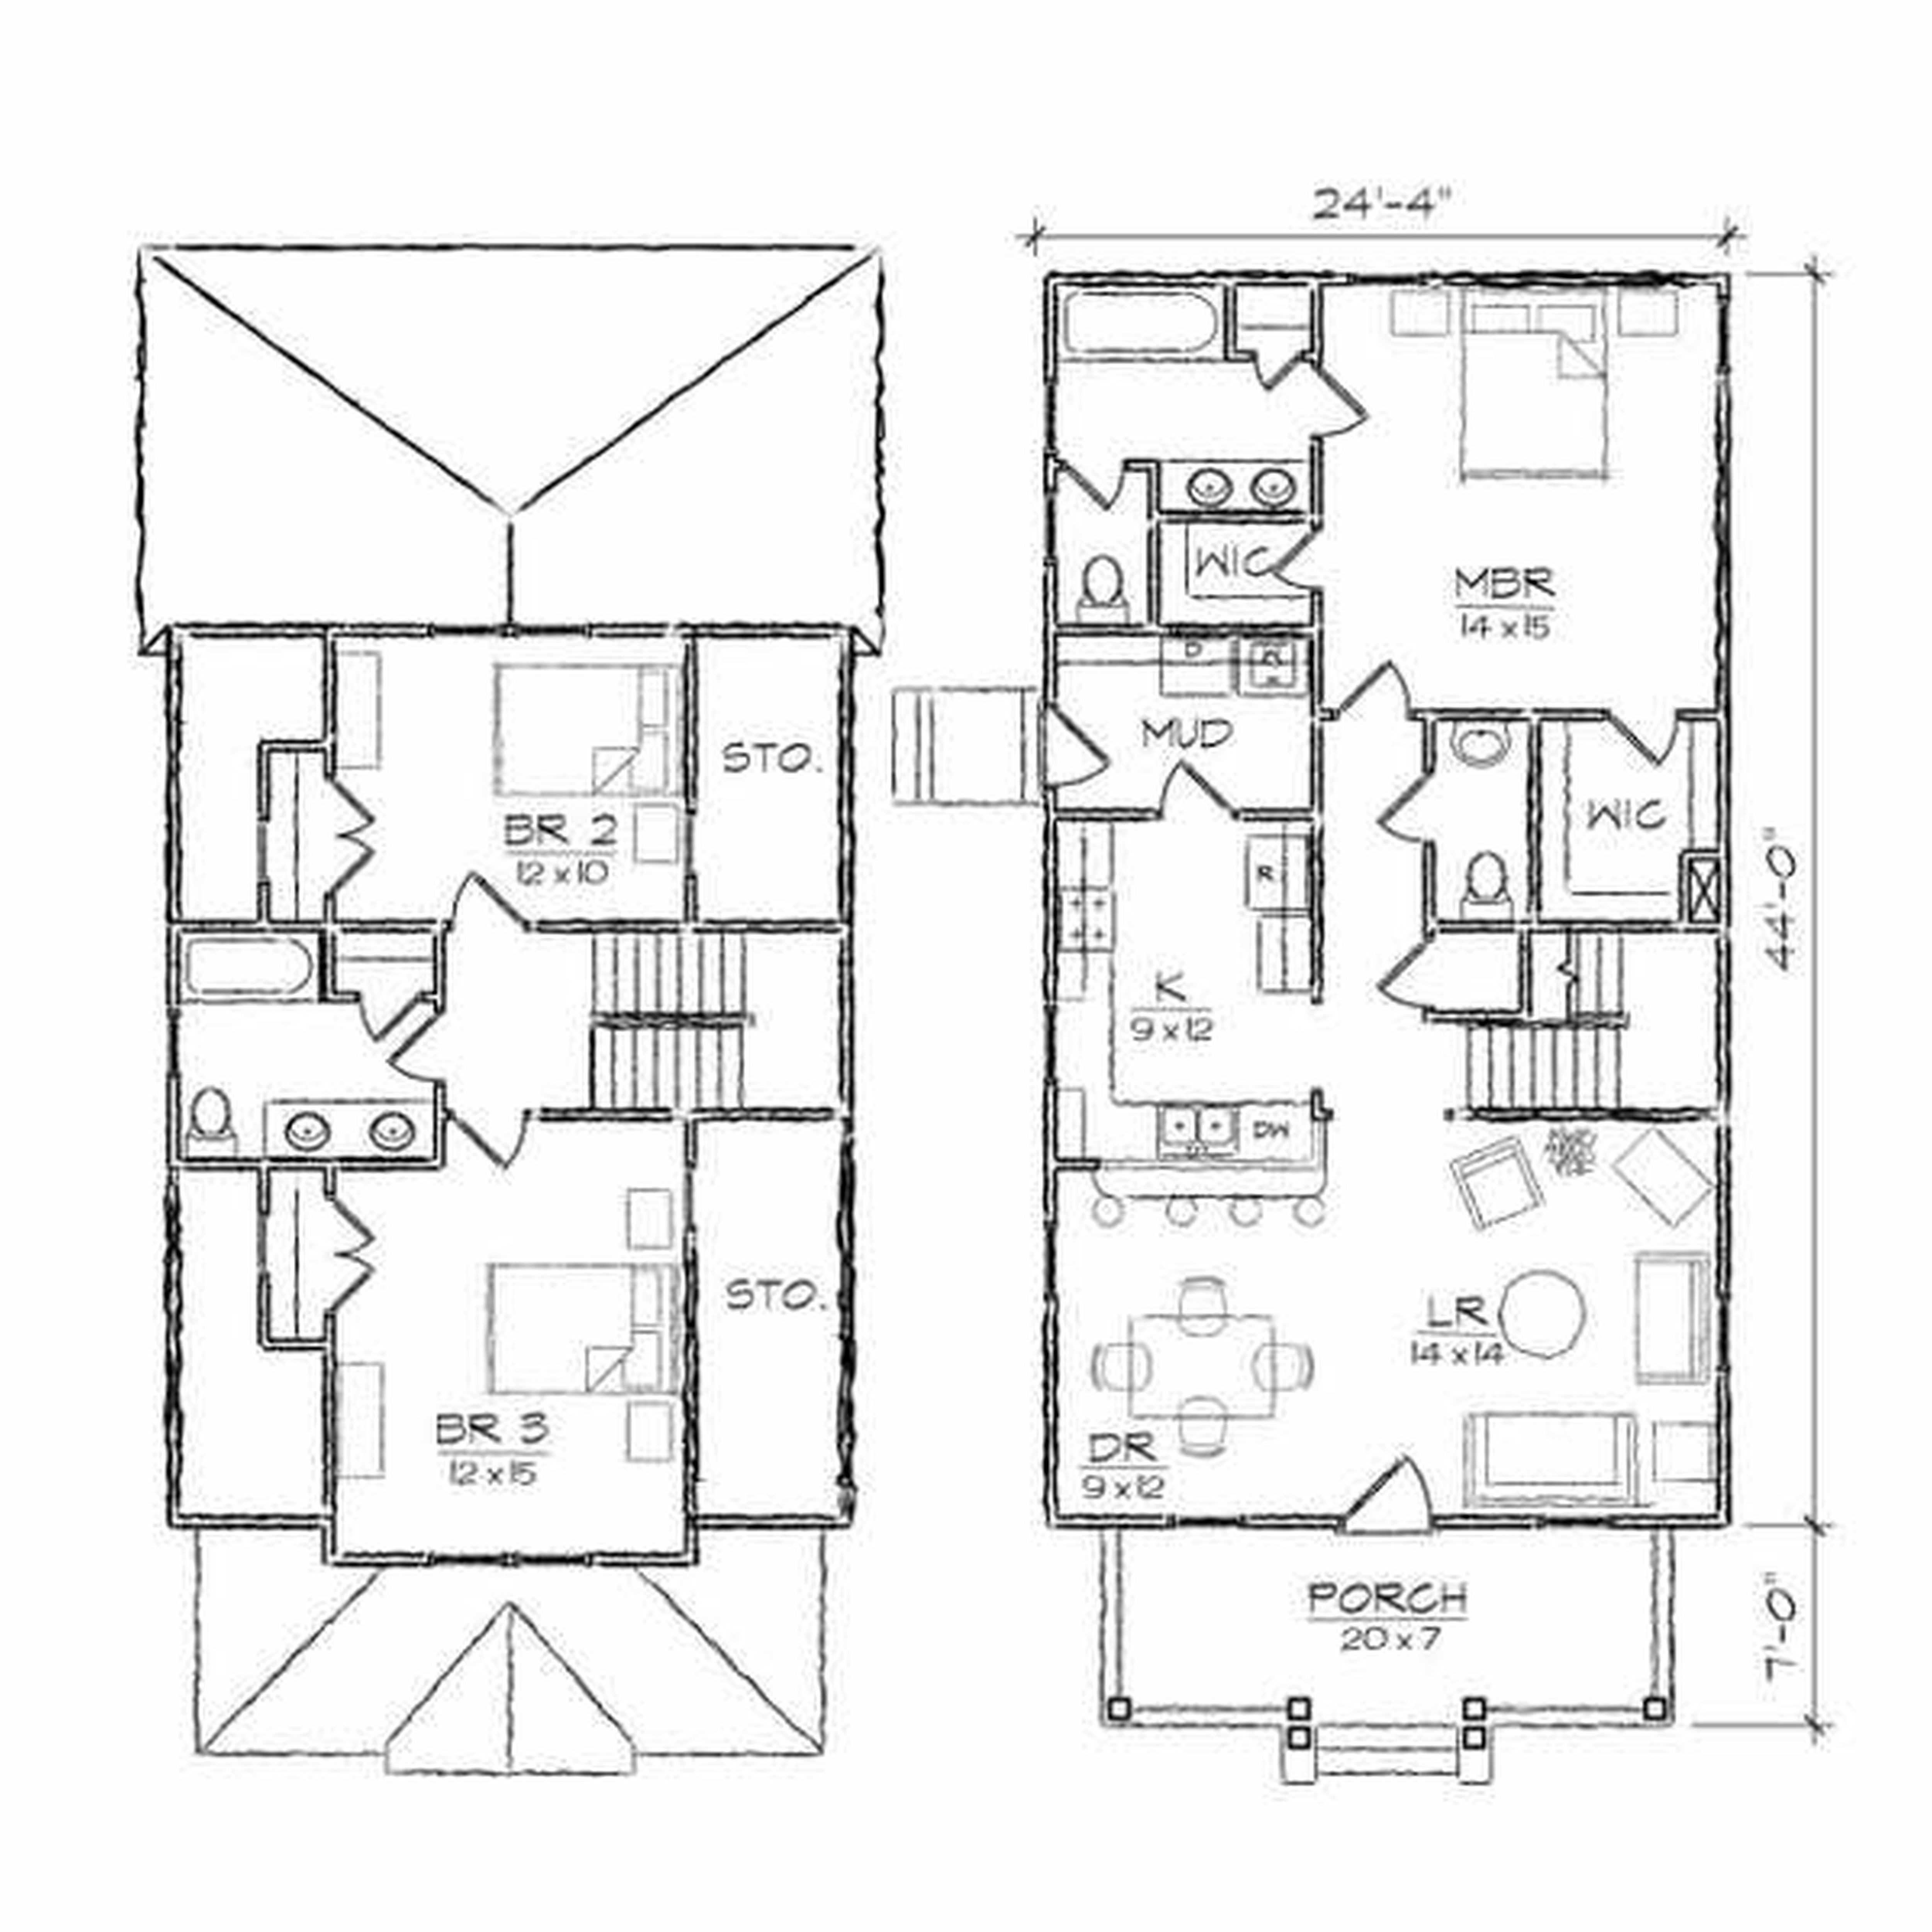 5000x5000 How To Draw A Floor Plan By Hand New House Interior Drawing